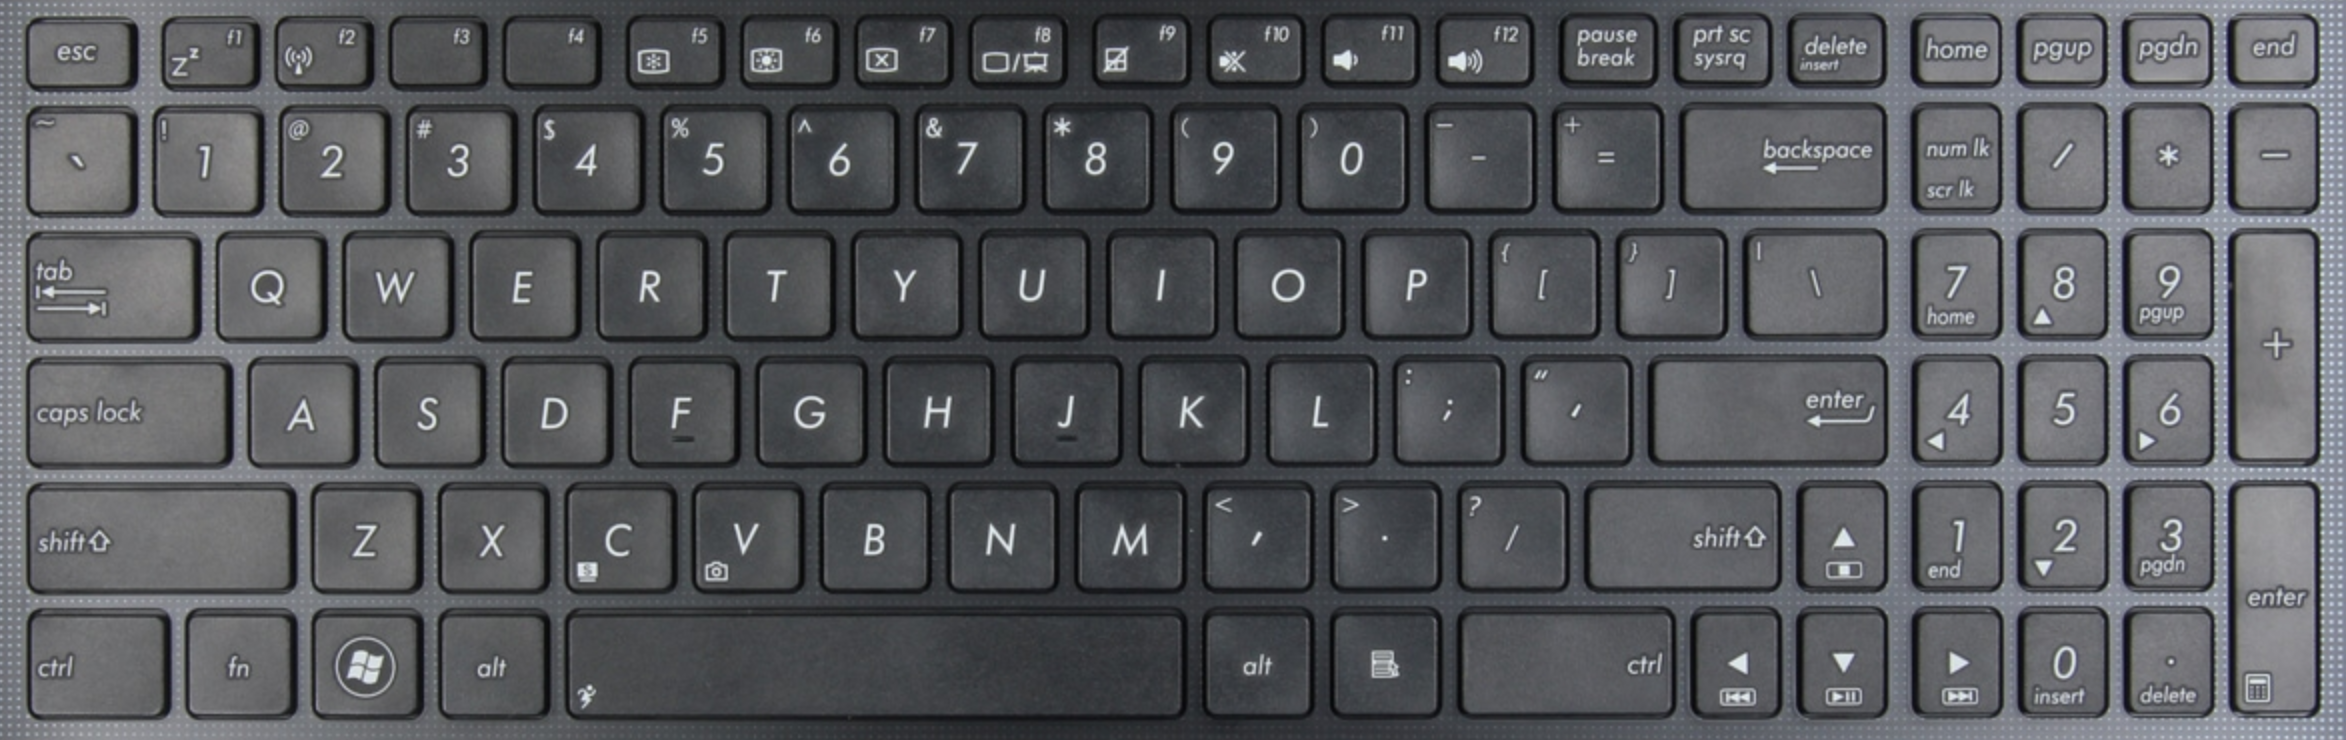 Asus X501 Laptop Keyboard Key Replacement